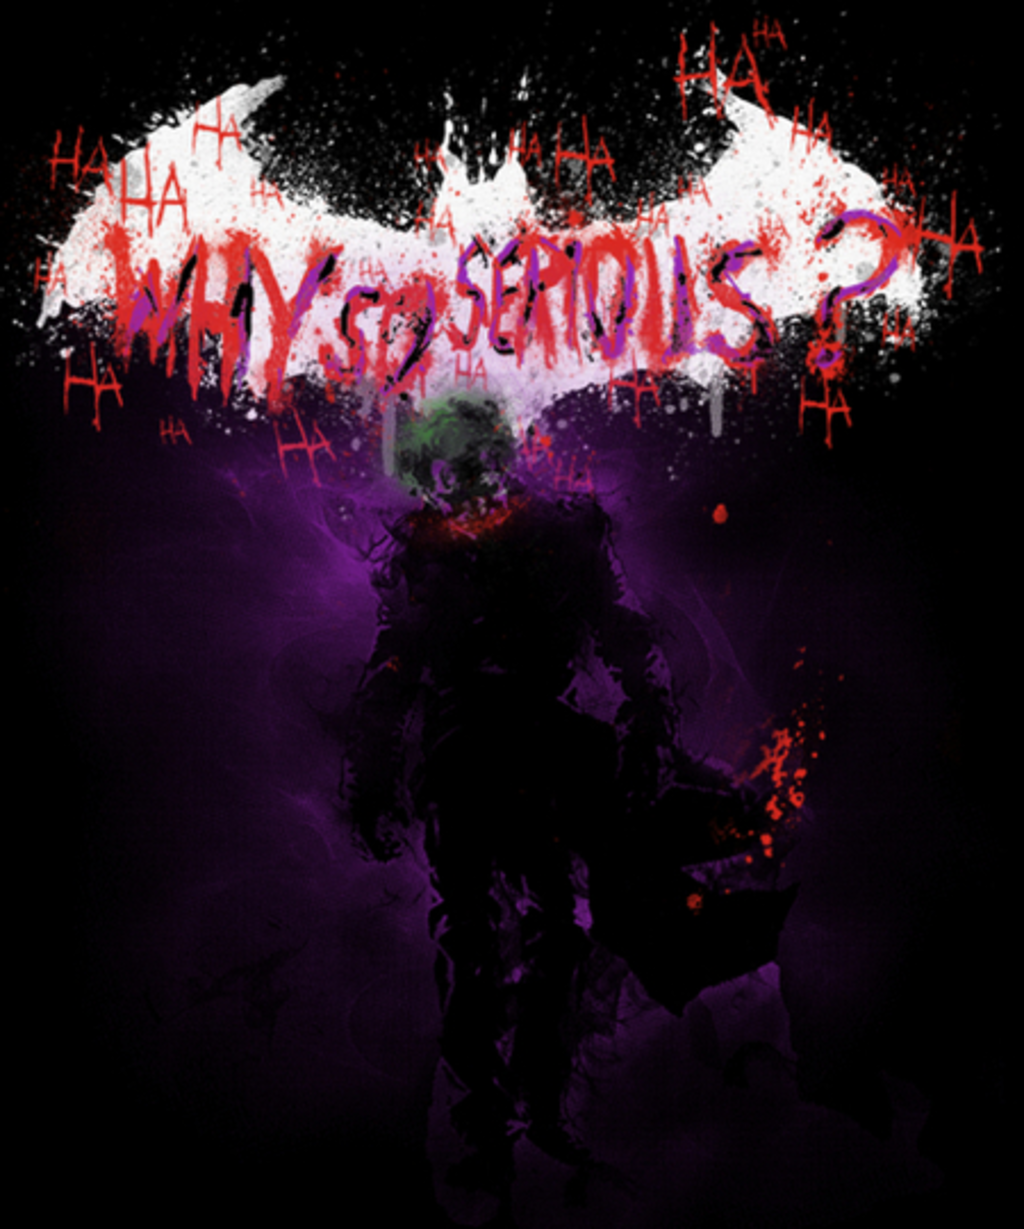 Qwertee: why so SERIOUS?